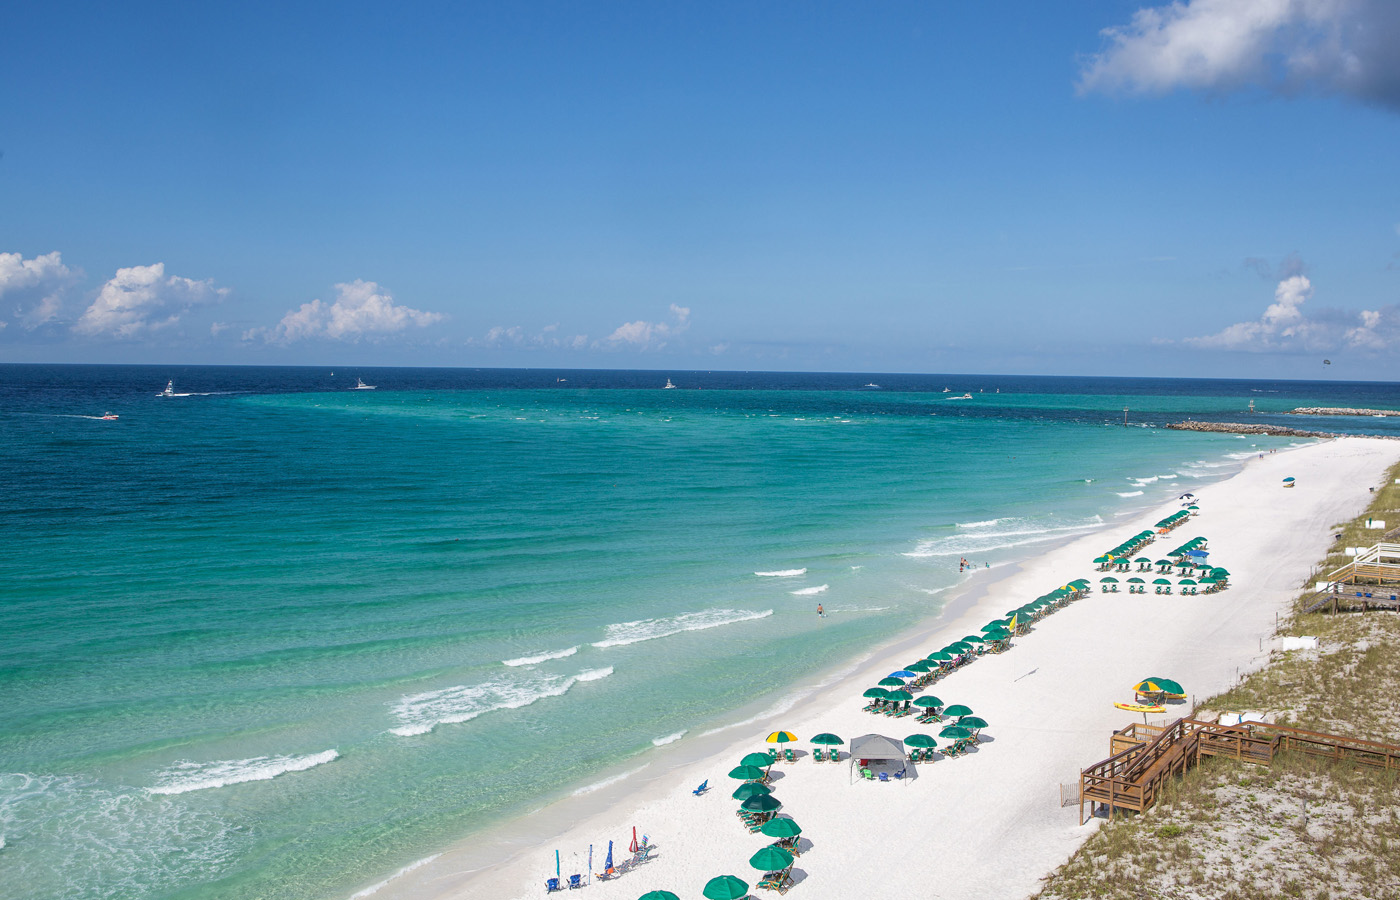 Last Chance Summer?! Hurry South to Destin or the Beaches of South Walton